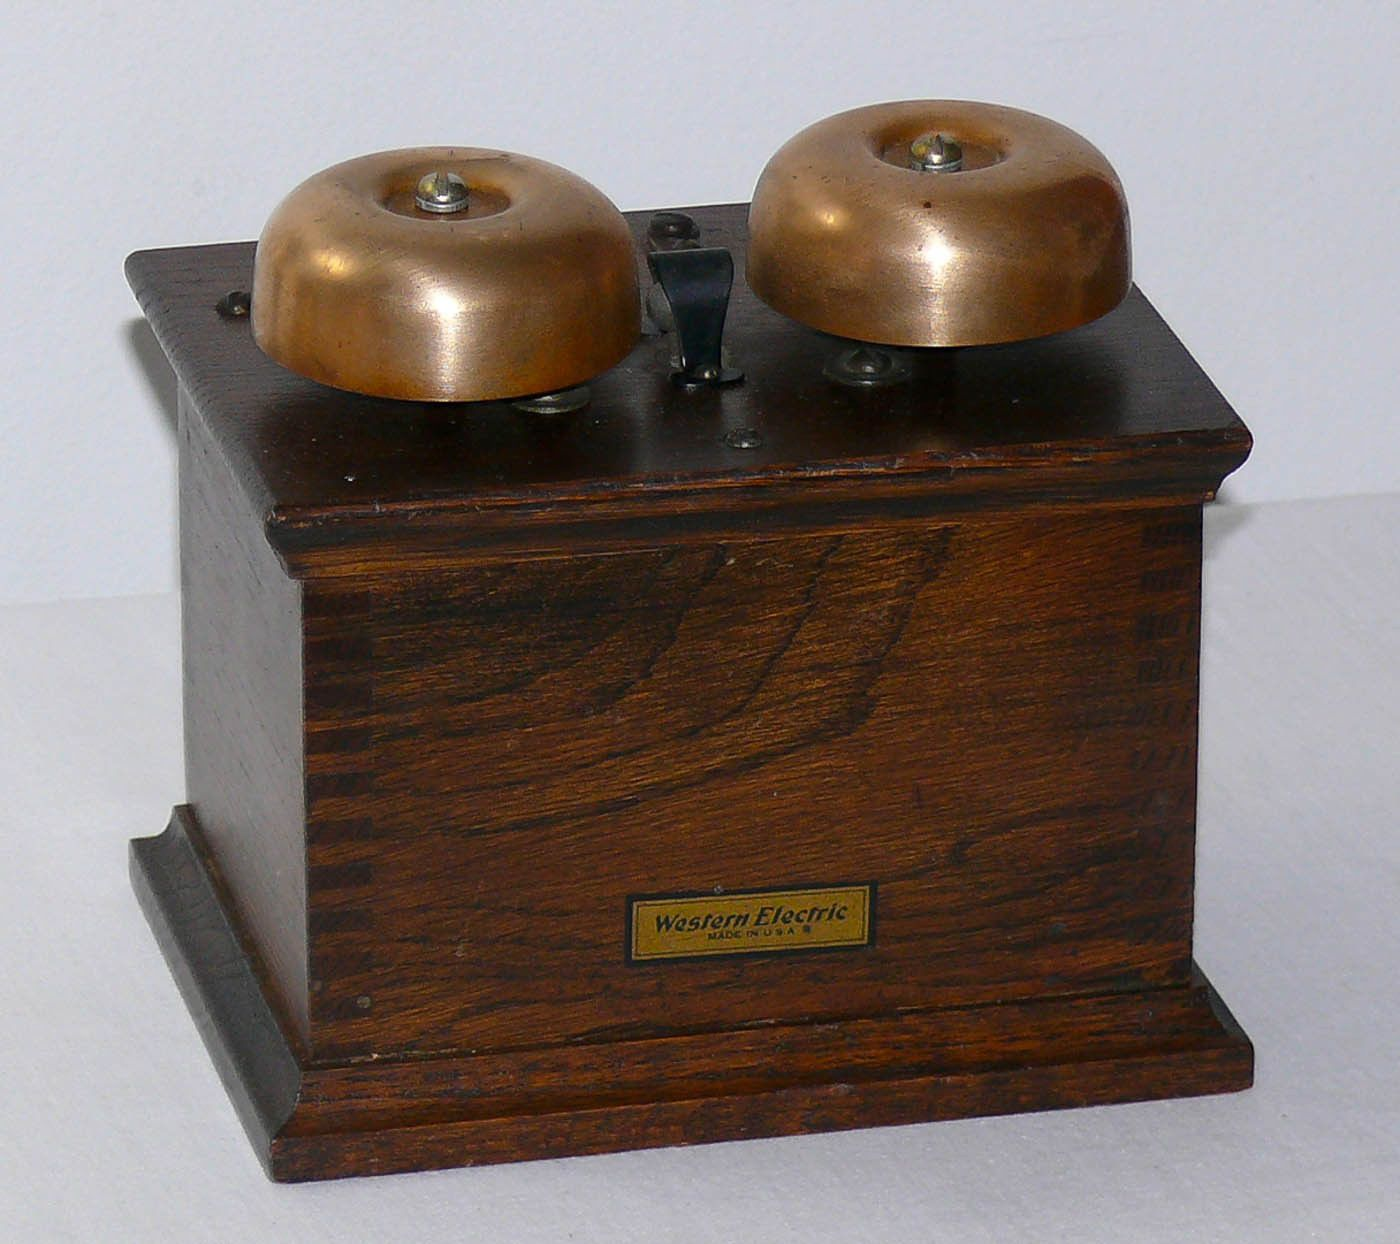 Vintage Western Electric 127F Telephone Extension Ringer Box, Original Condition | eBay